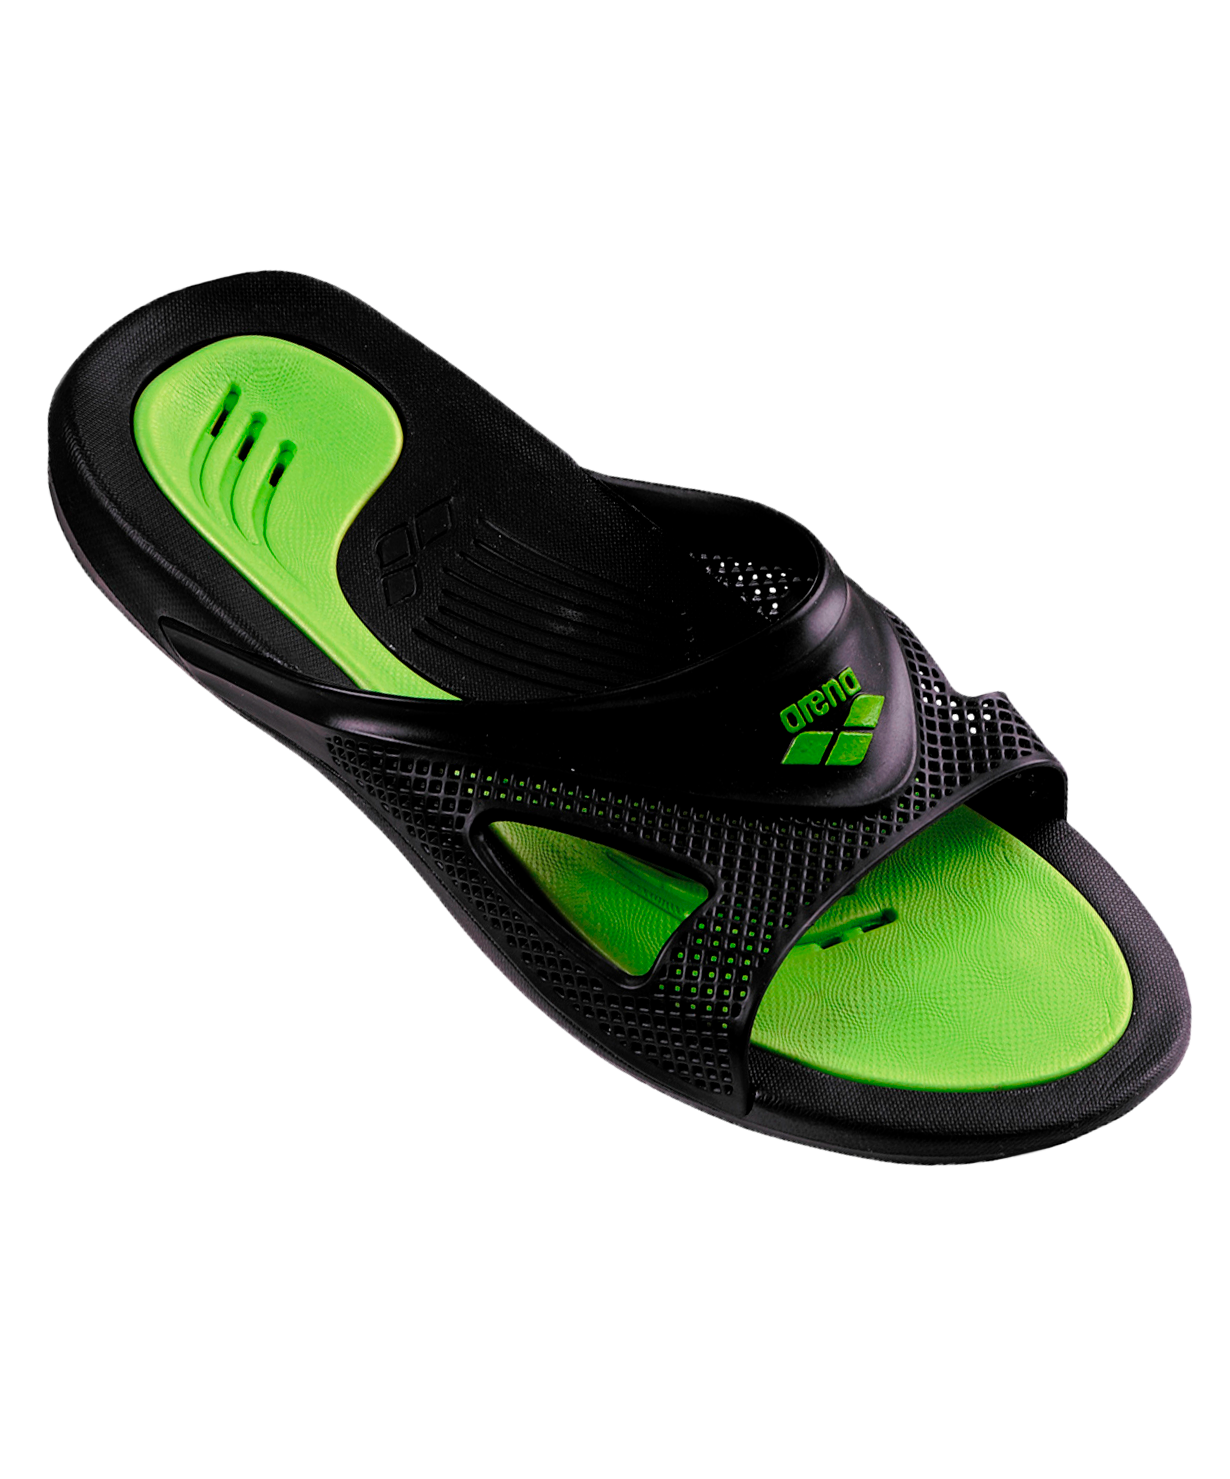 8f8f0a242d51 Сланцы мужские Arena Hydrofit Man Hook Black/Black/Green, 80706 56 ...